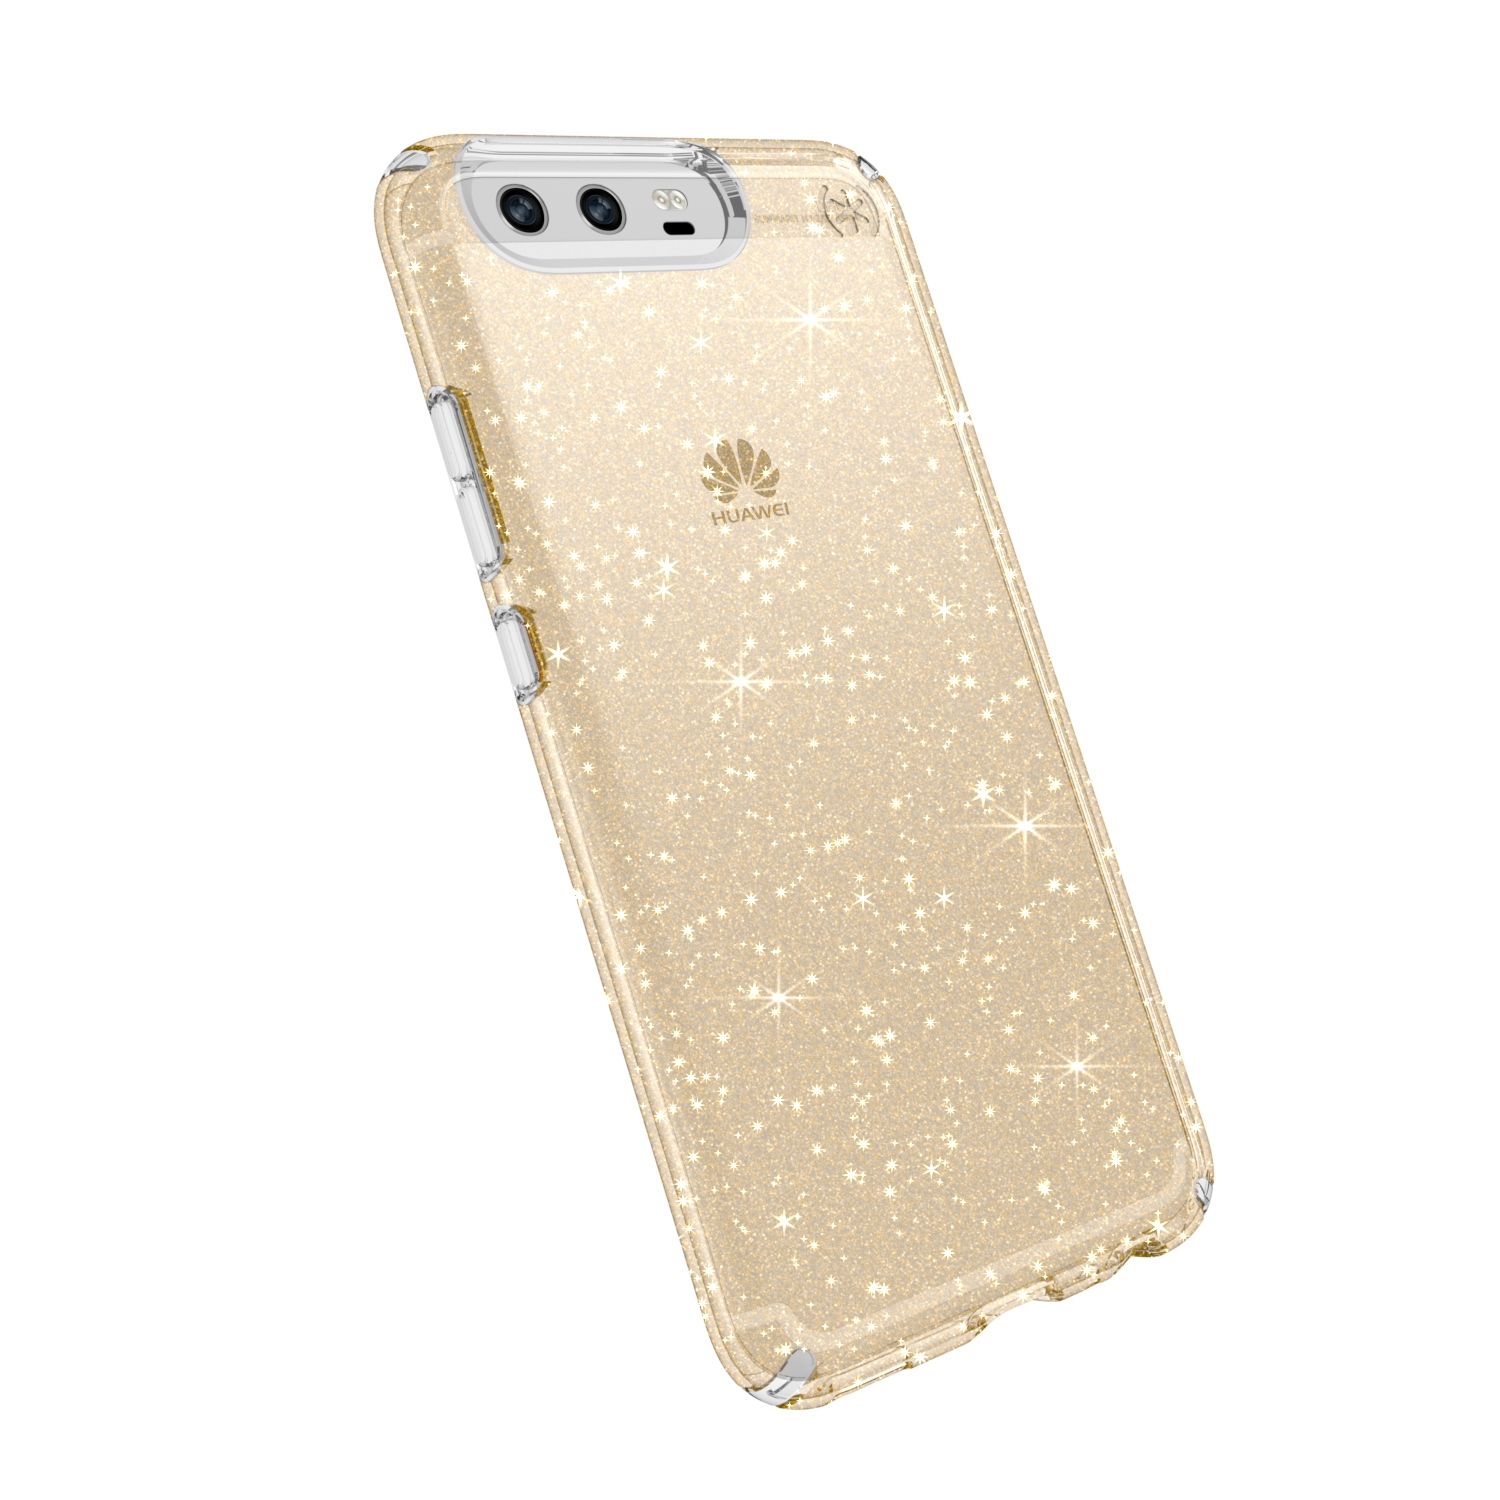 Search and compare best prices of Speck Presidio Clear with Glitter Huawei P10 Cases Clear/Gold Glitter in UK